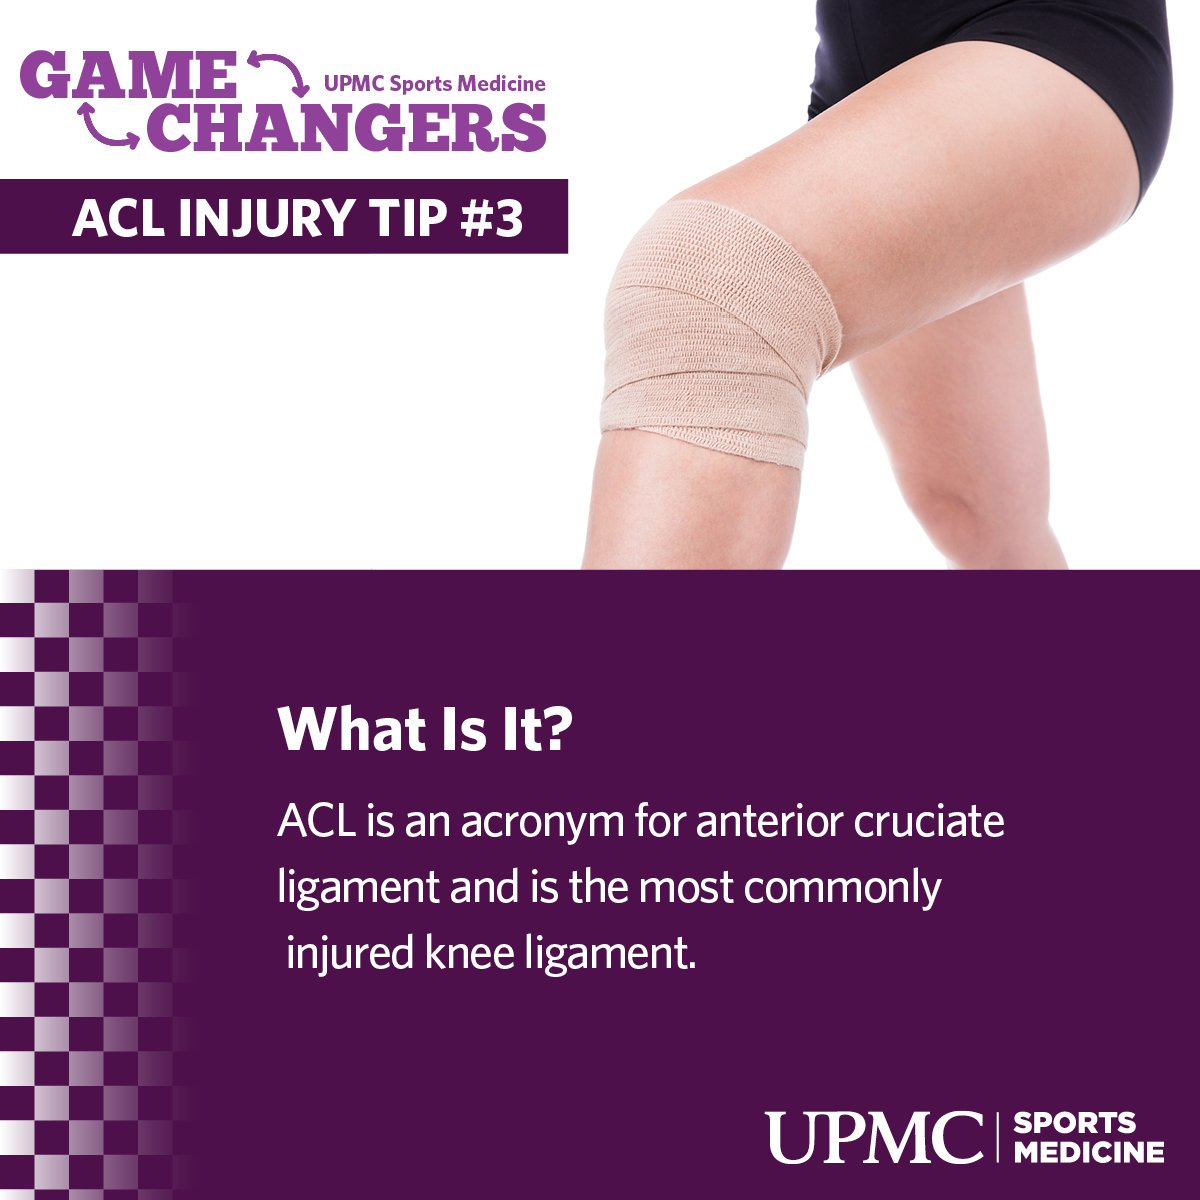 UPMC_GameChangers_ACL_FB3_FINAL